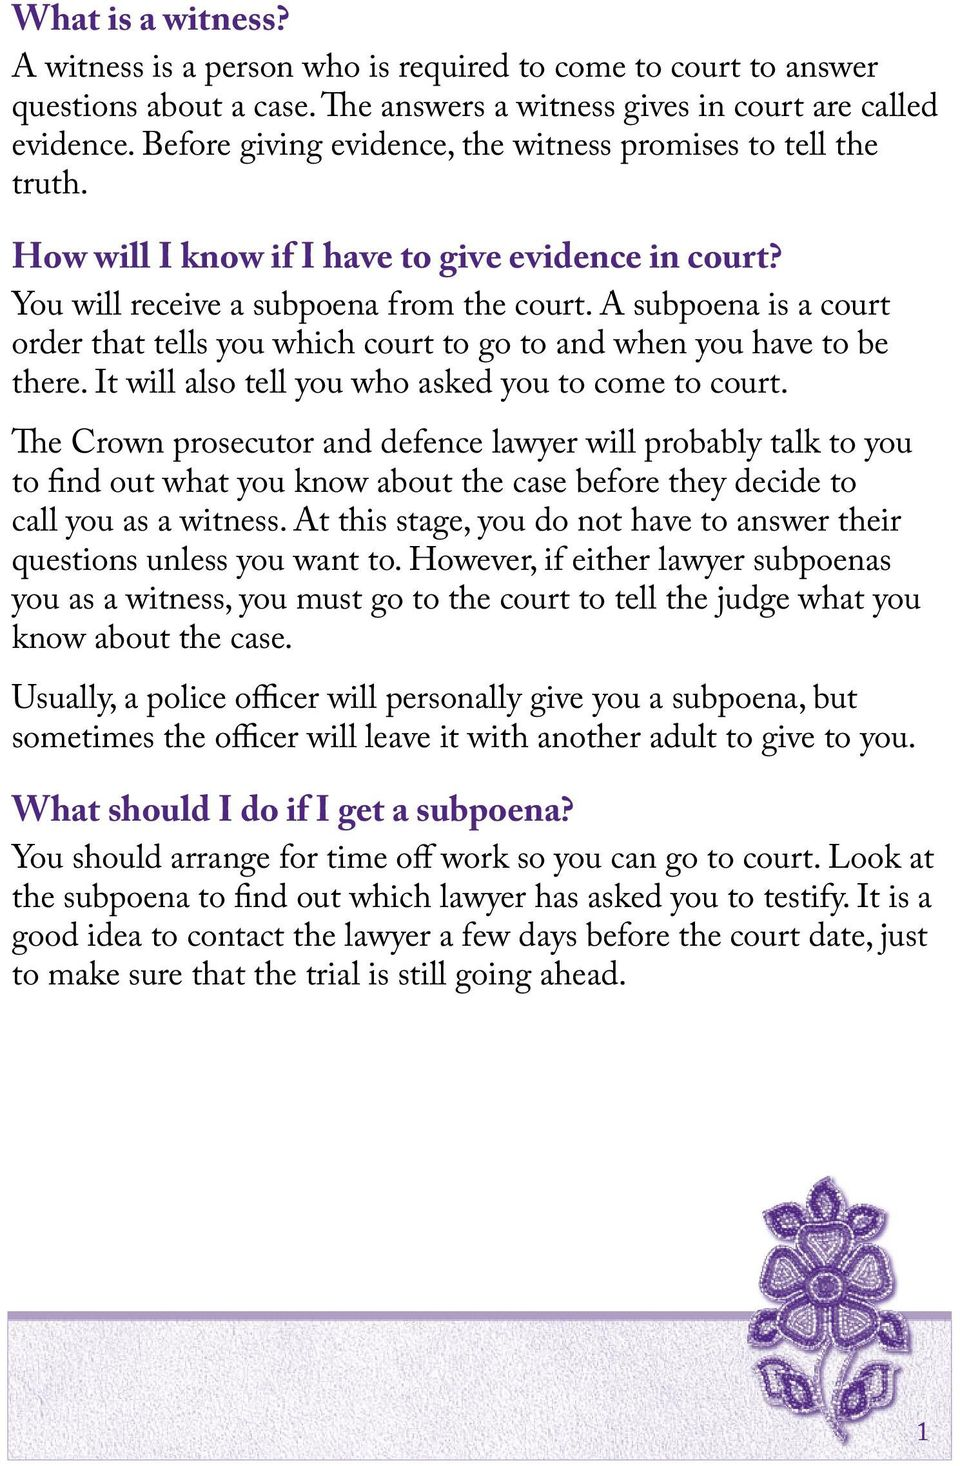 A subpoena is a court order that tells you which court to go to and when you have to be there. It will also tell you who asked you to come to court.